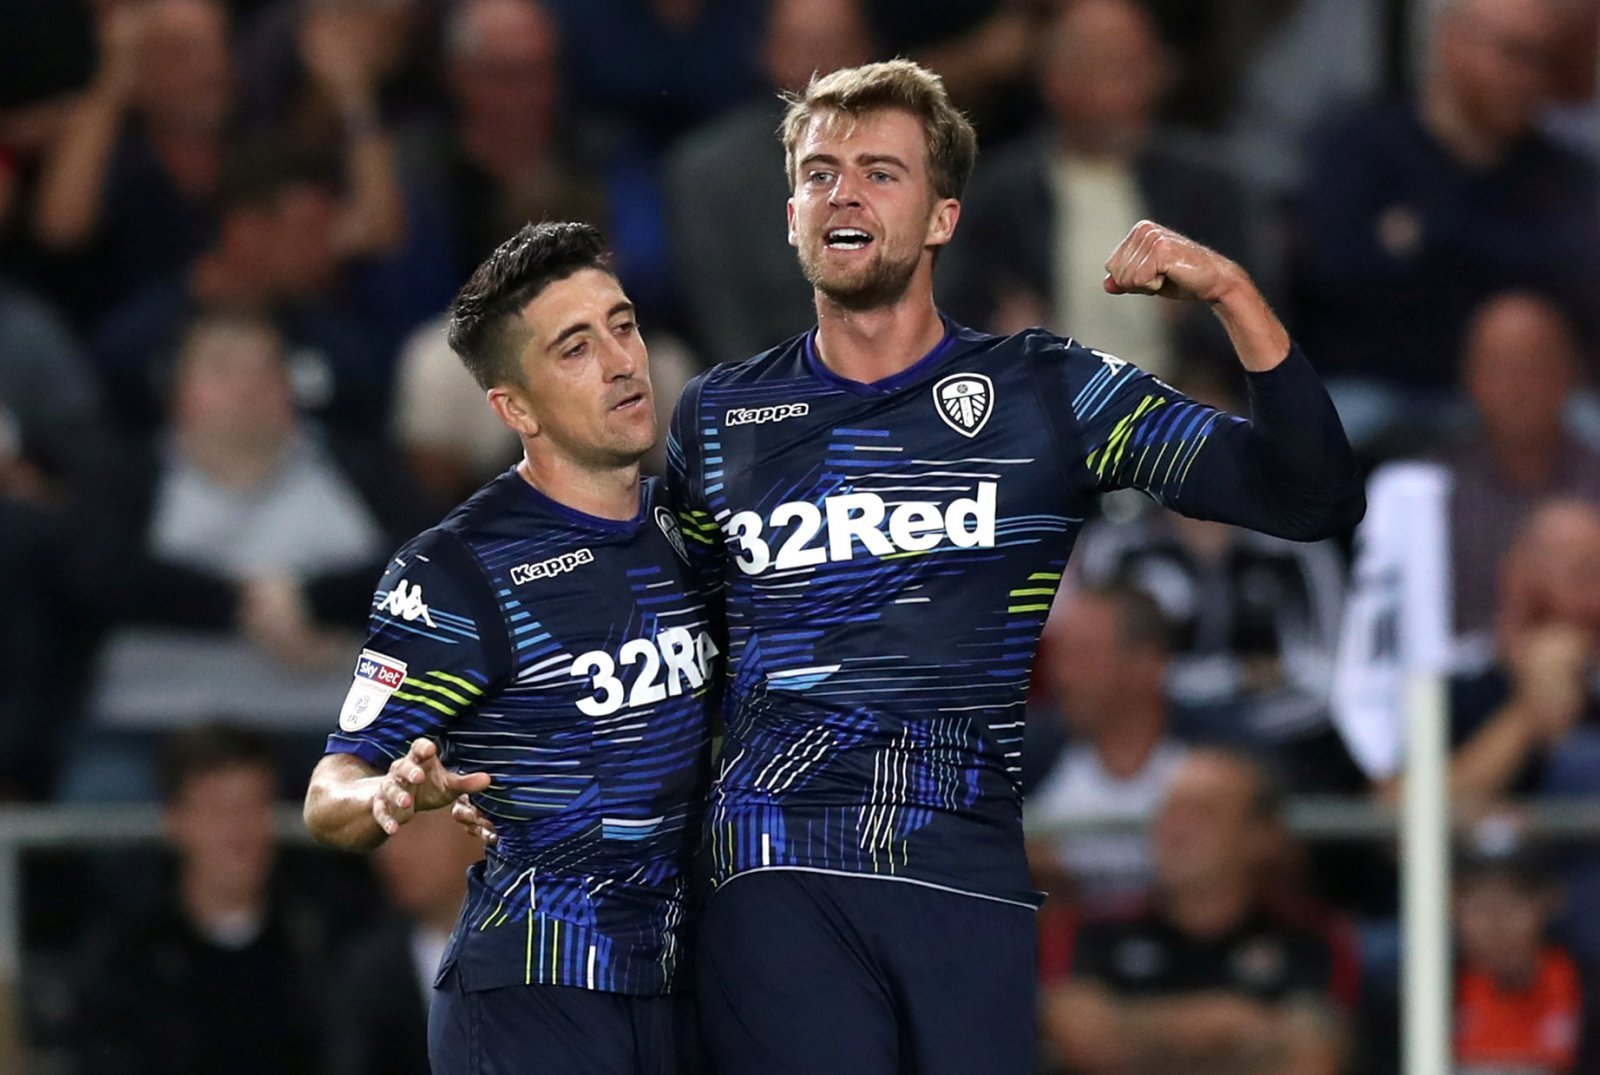 Leeds fans can't wait for Bamford's return